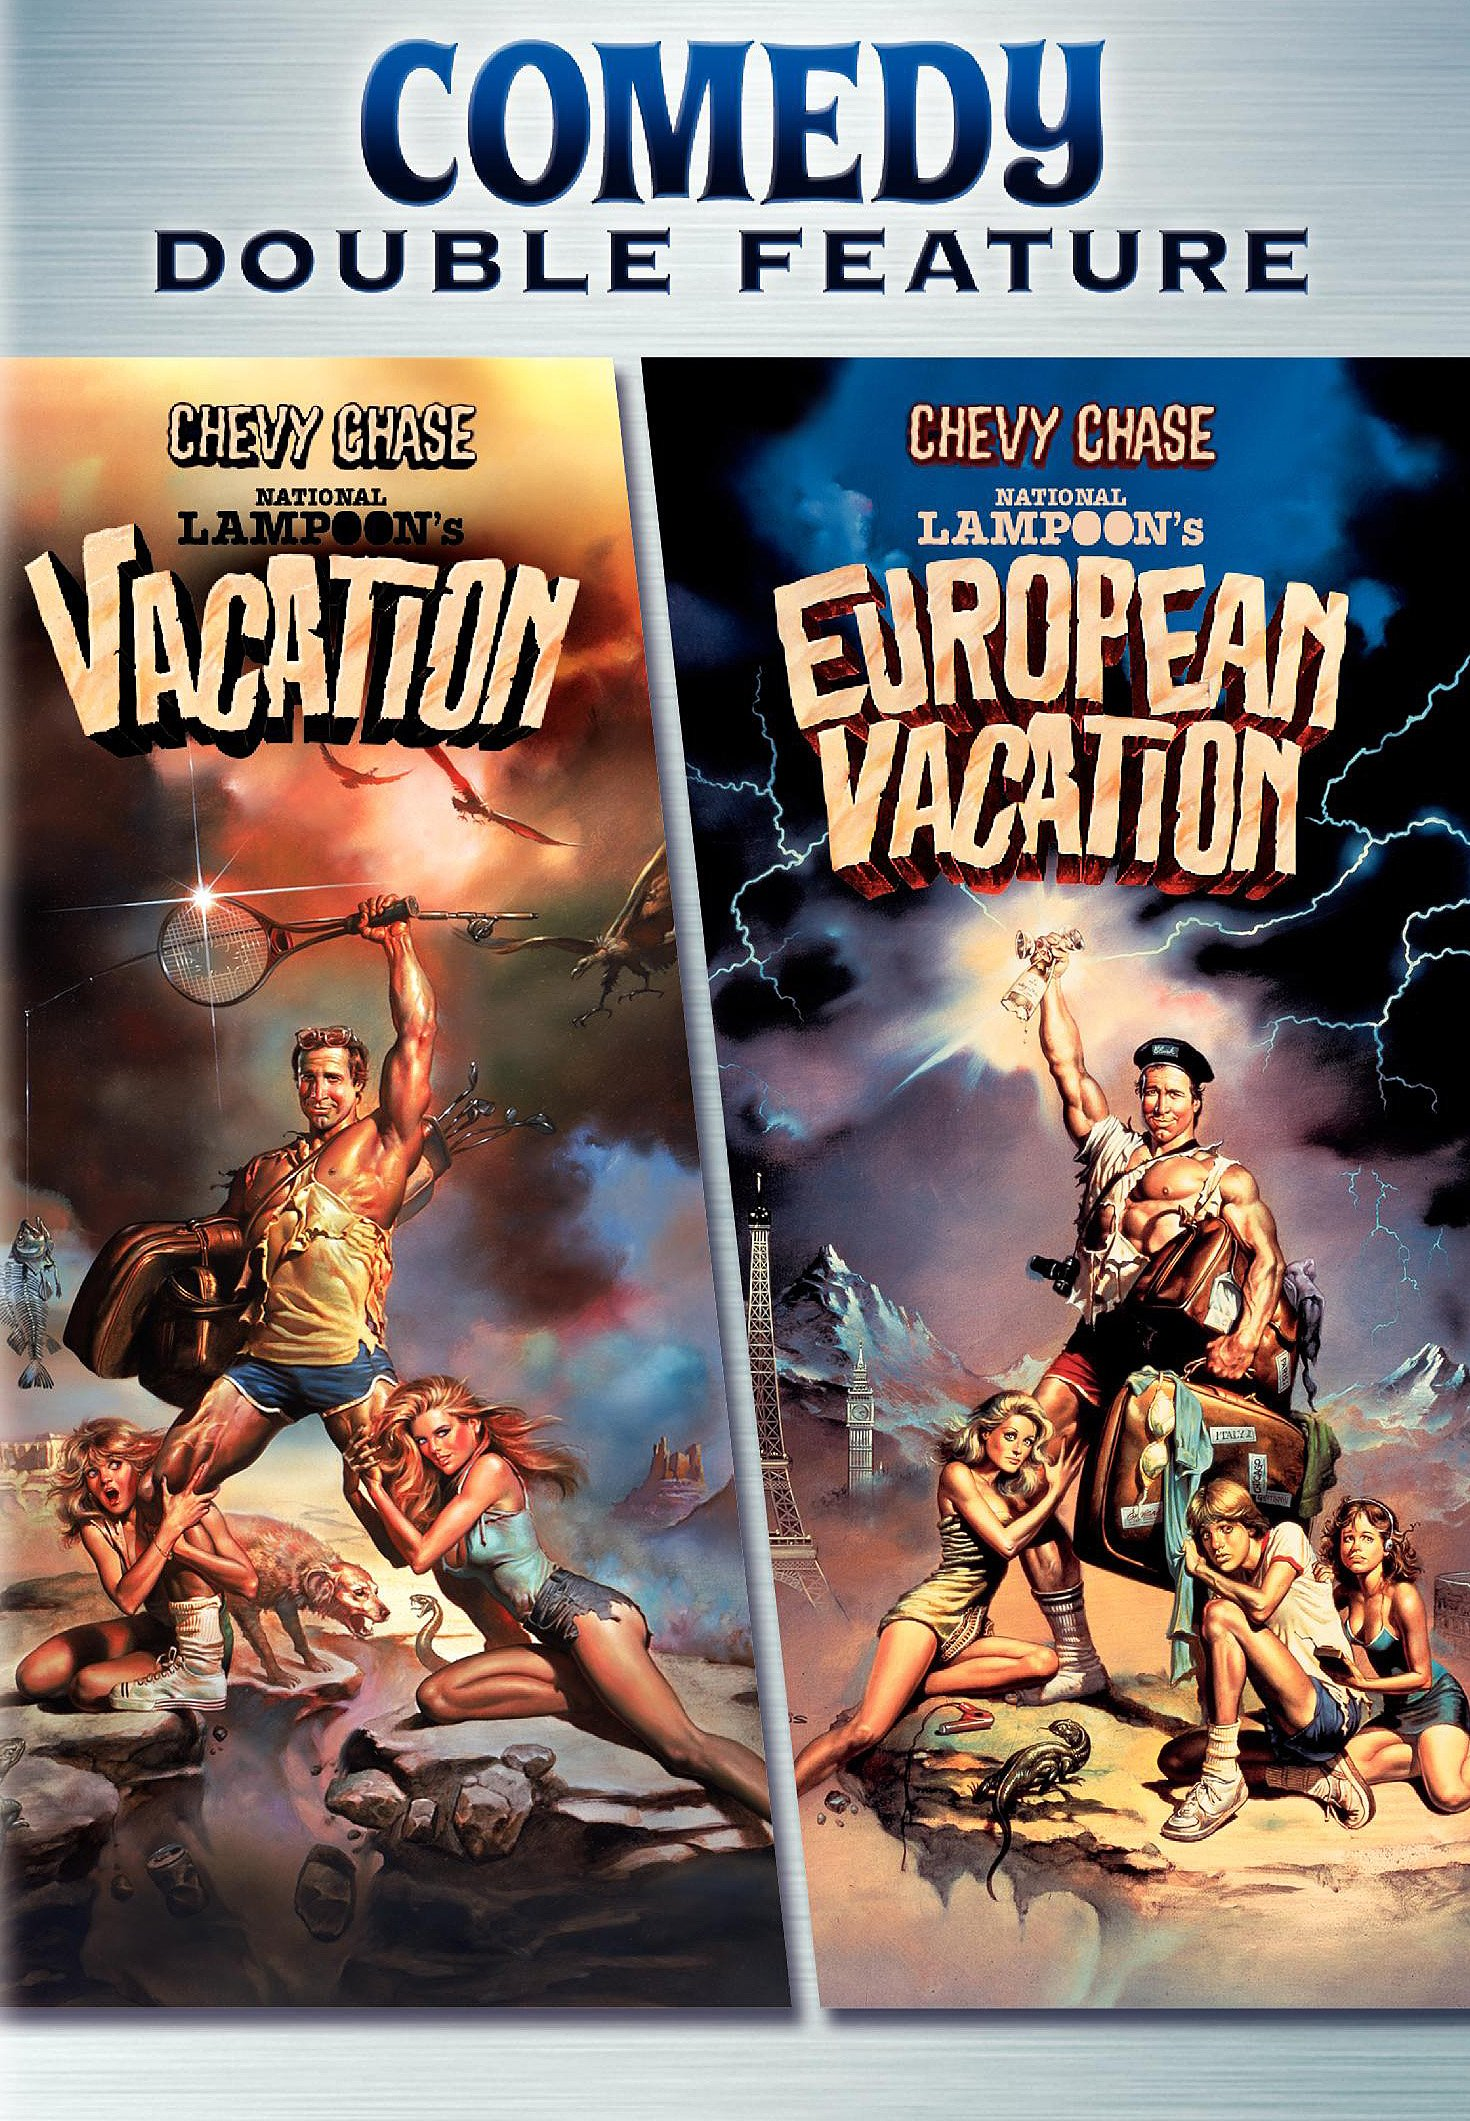 Vegas Vacation Dvd Cover R1: National Lampoons European Vacation Quotes. QuotesGram